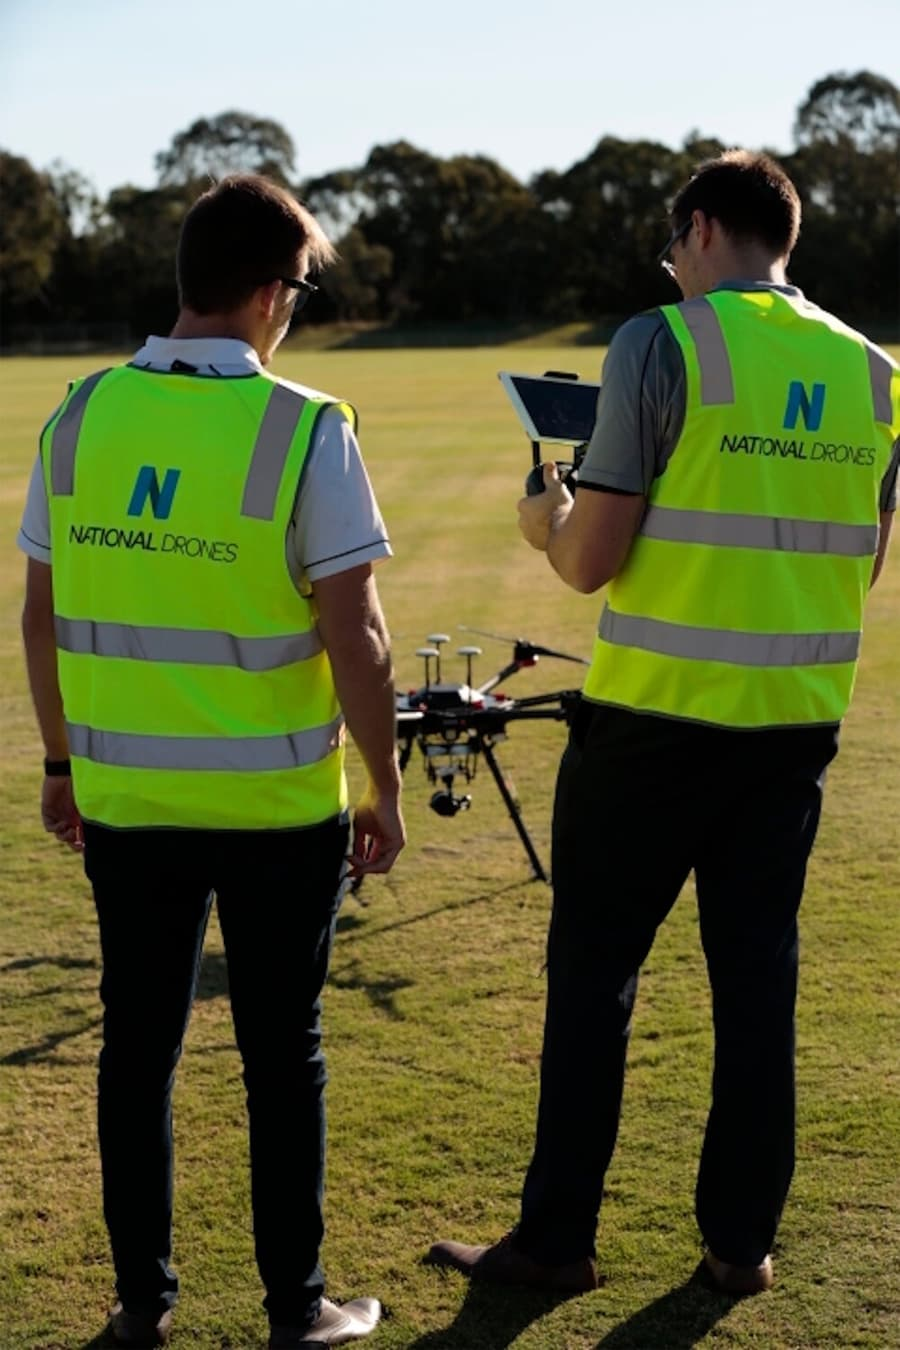 The Best Drone for Land Surveying